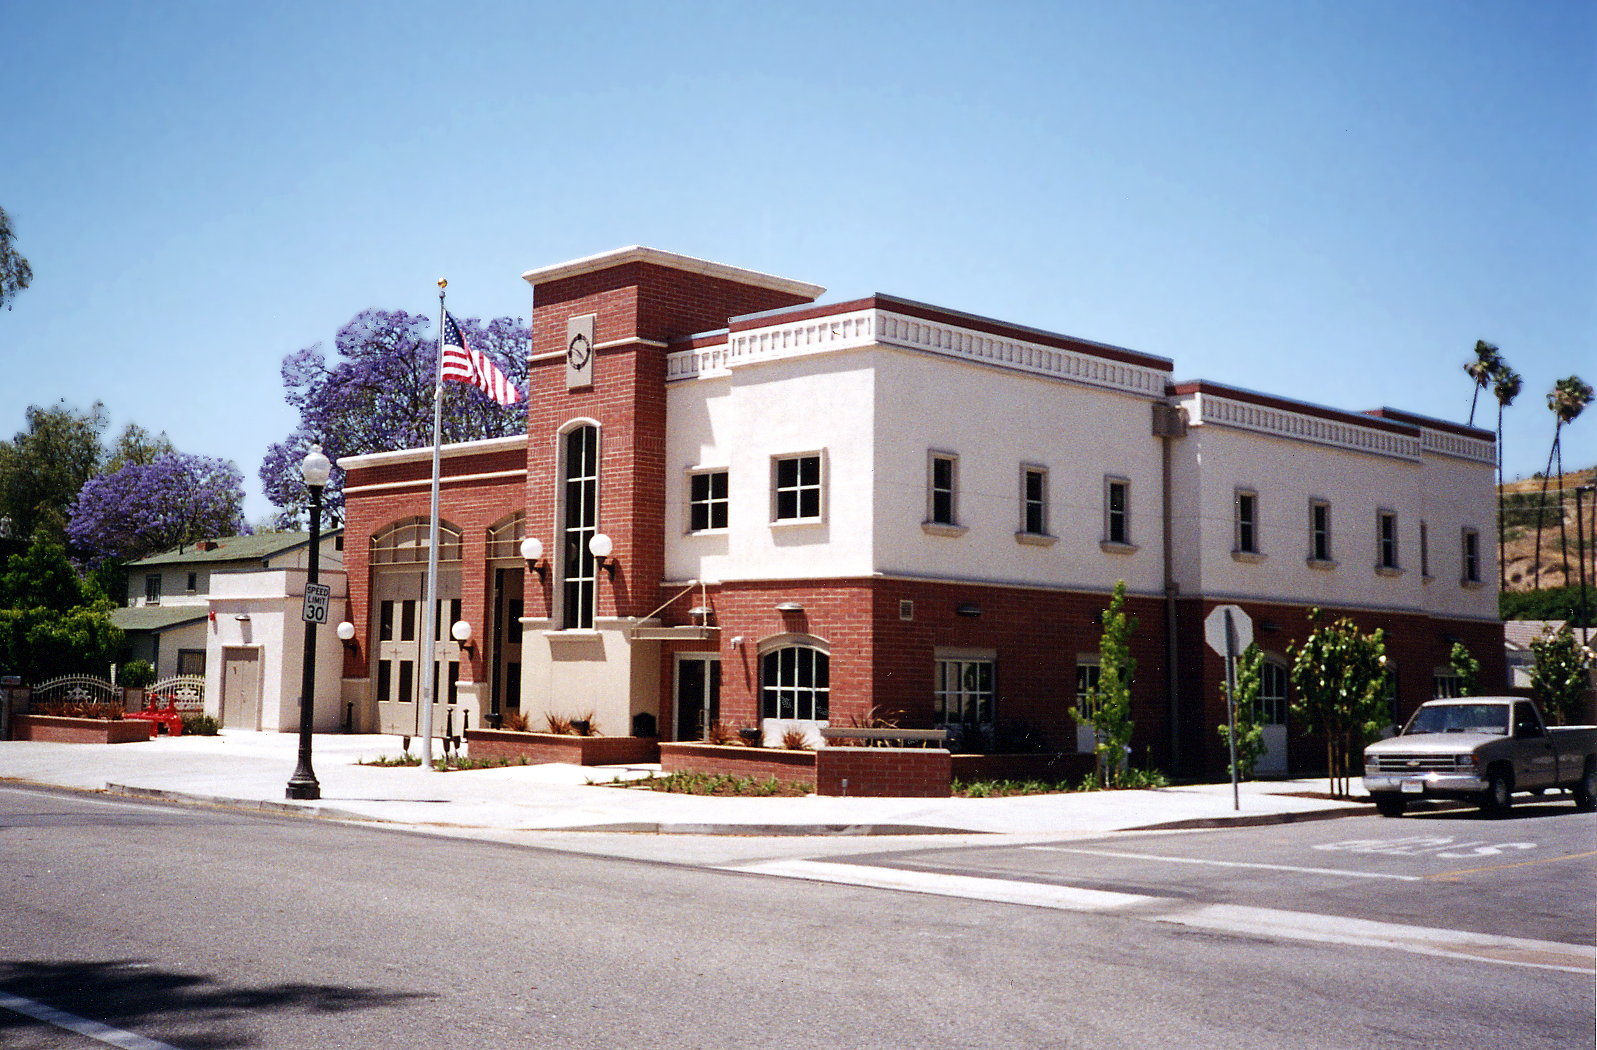 VENTURA COUNTY FIRE PROTECTION DISTRICT <br/> FIRE STATION #42 MOORPARK, CALIFORNIA